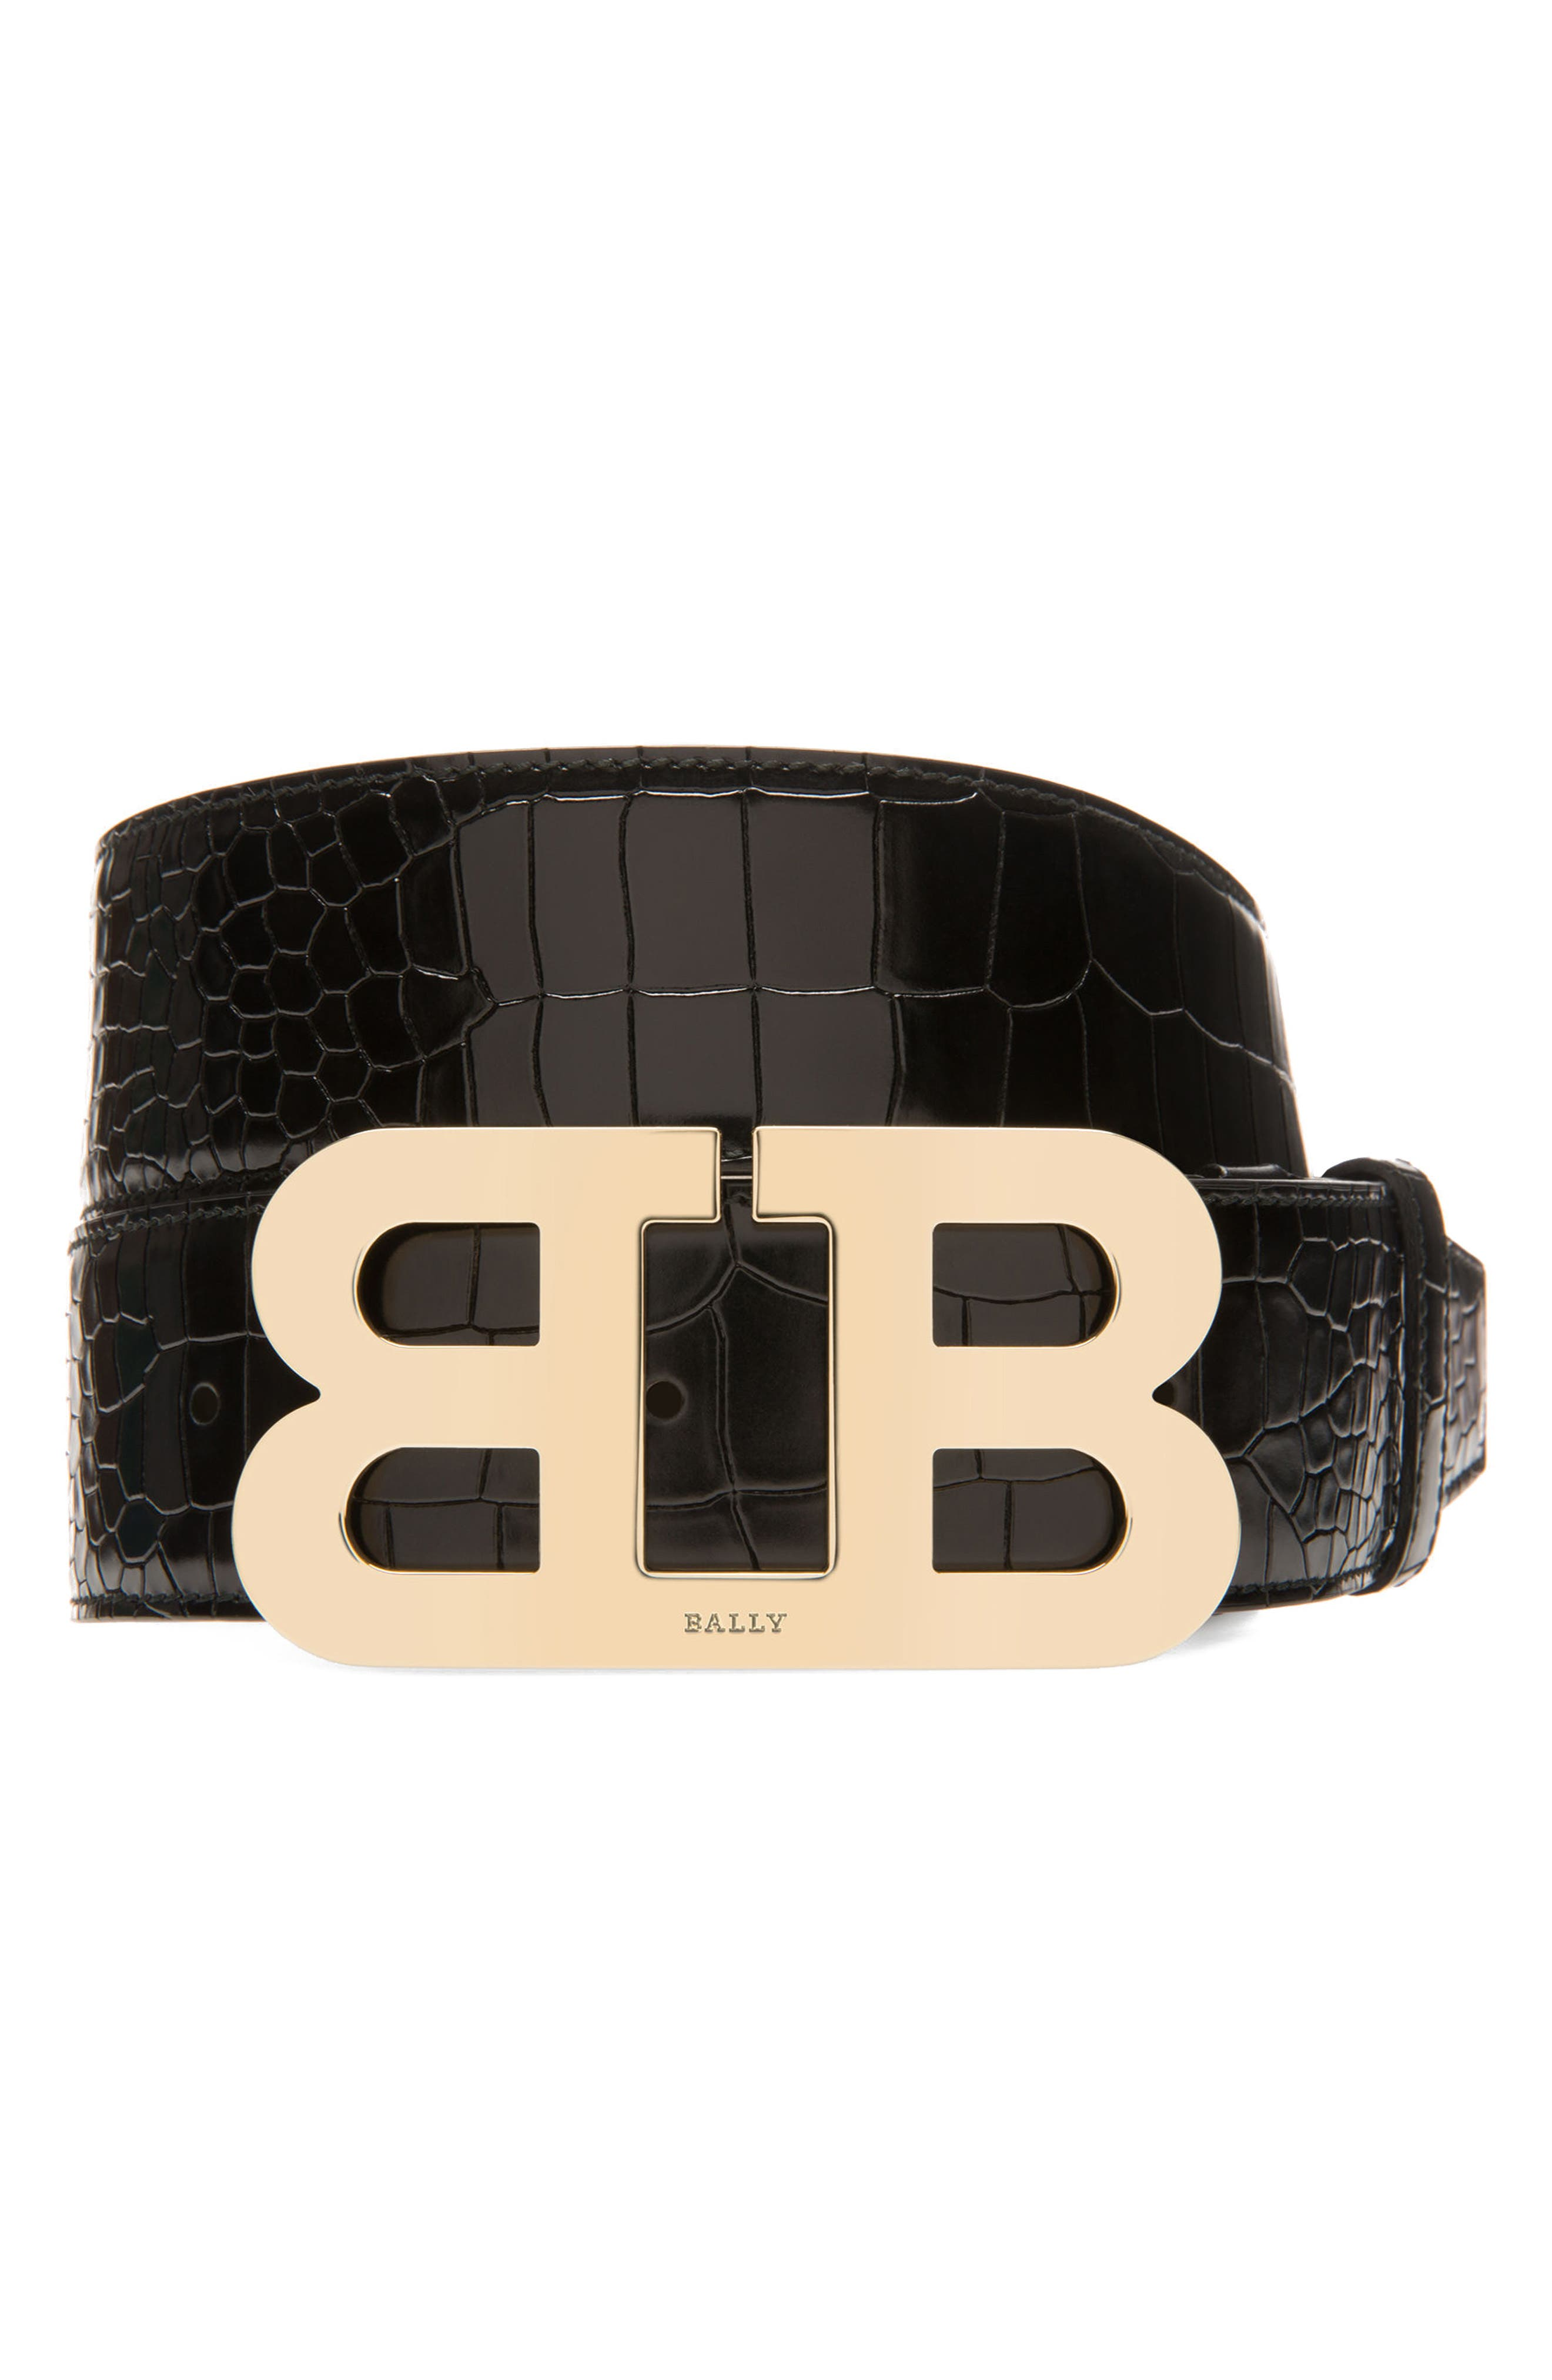 Mirror Buckle Embossed Leather Belt,                             Main thumbnail 1, color,                             001